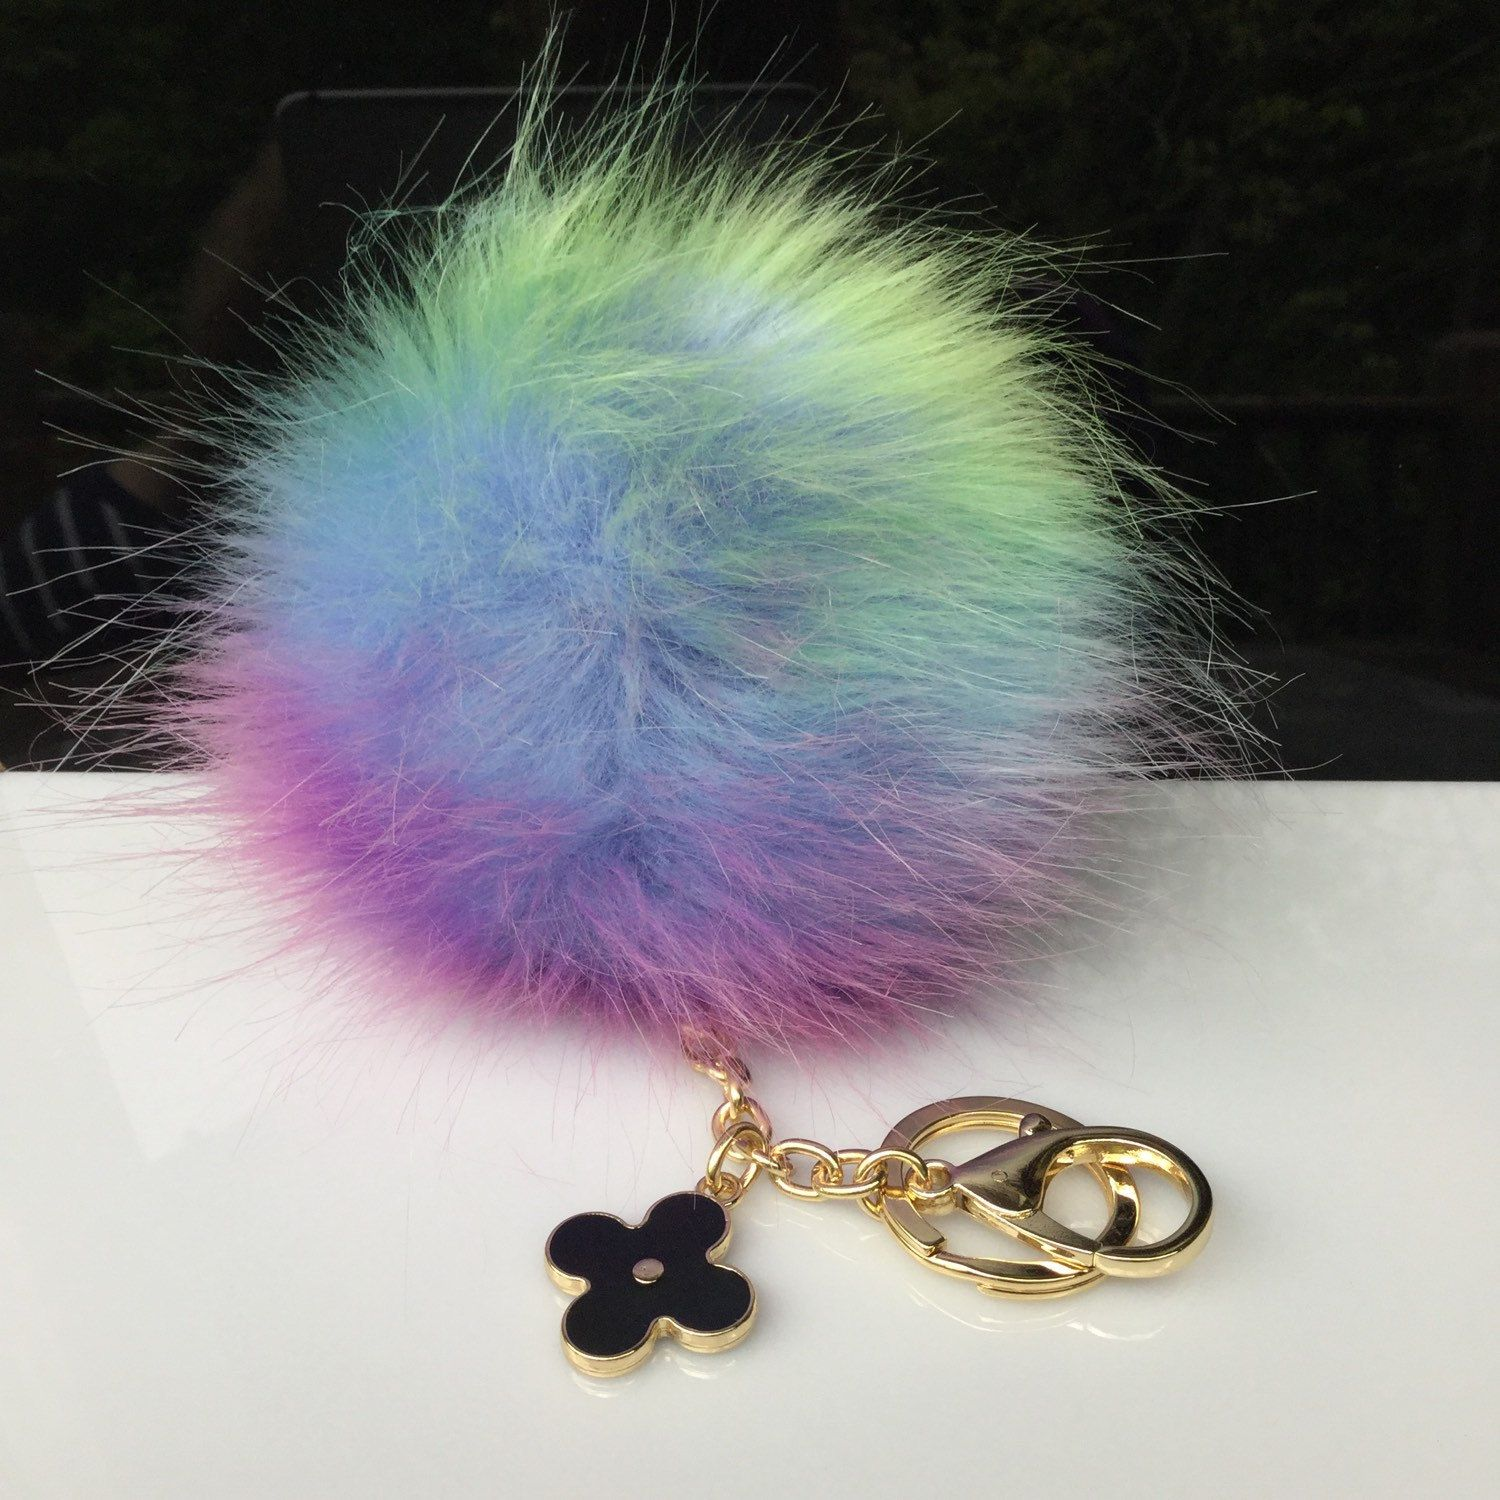 835366d2fc17 Faux Fox Fur Pom Pom bag Keyring Hot Couture Novelty keychain pom pom fake  fur puff keyring rainbow -  15.29 USD